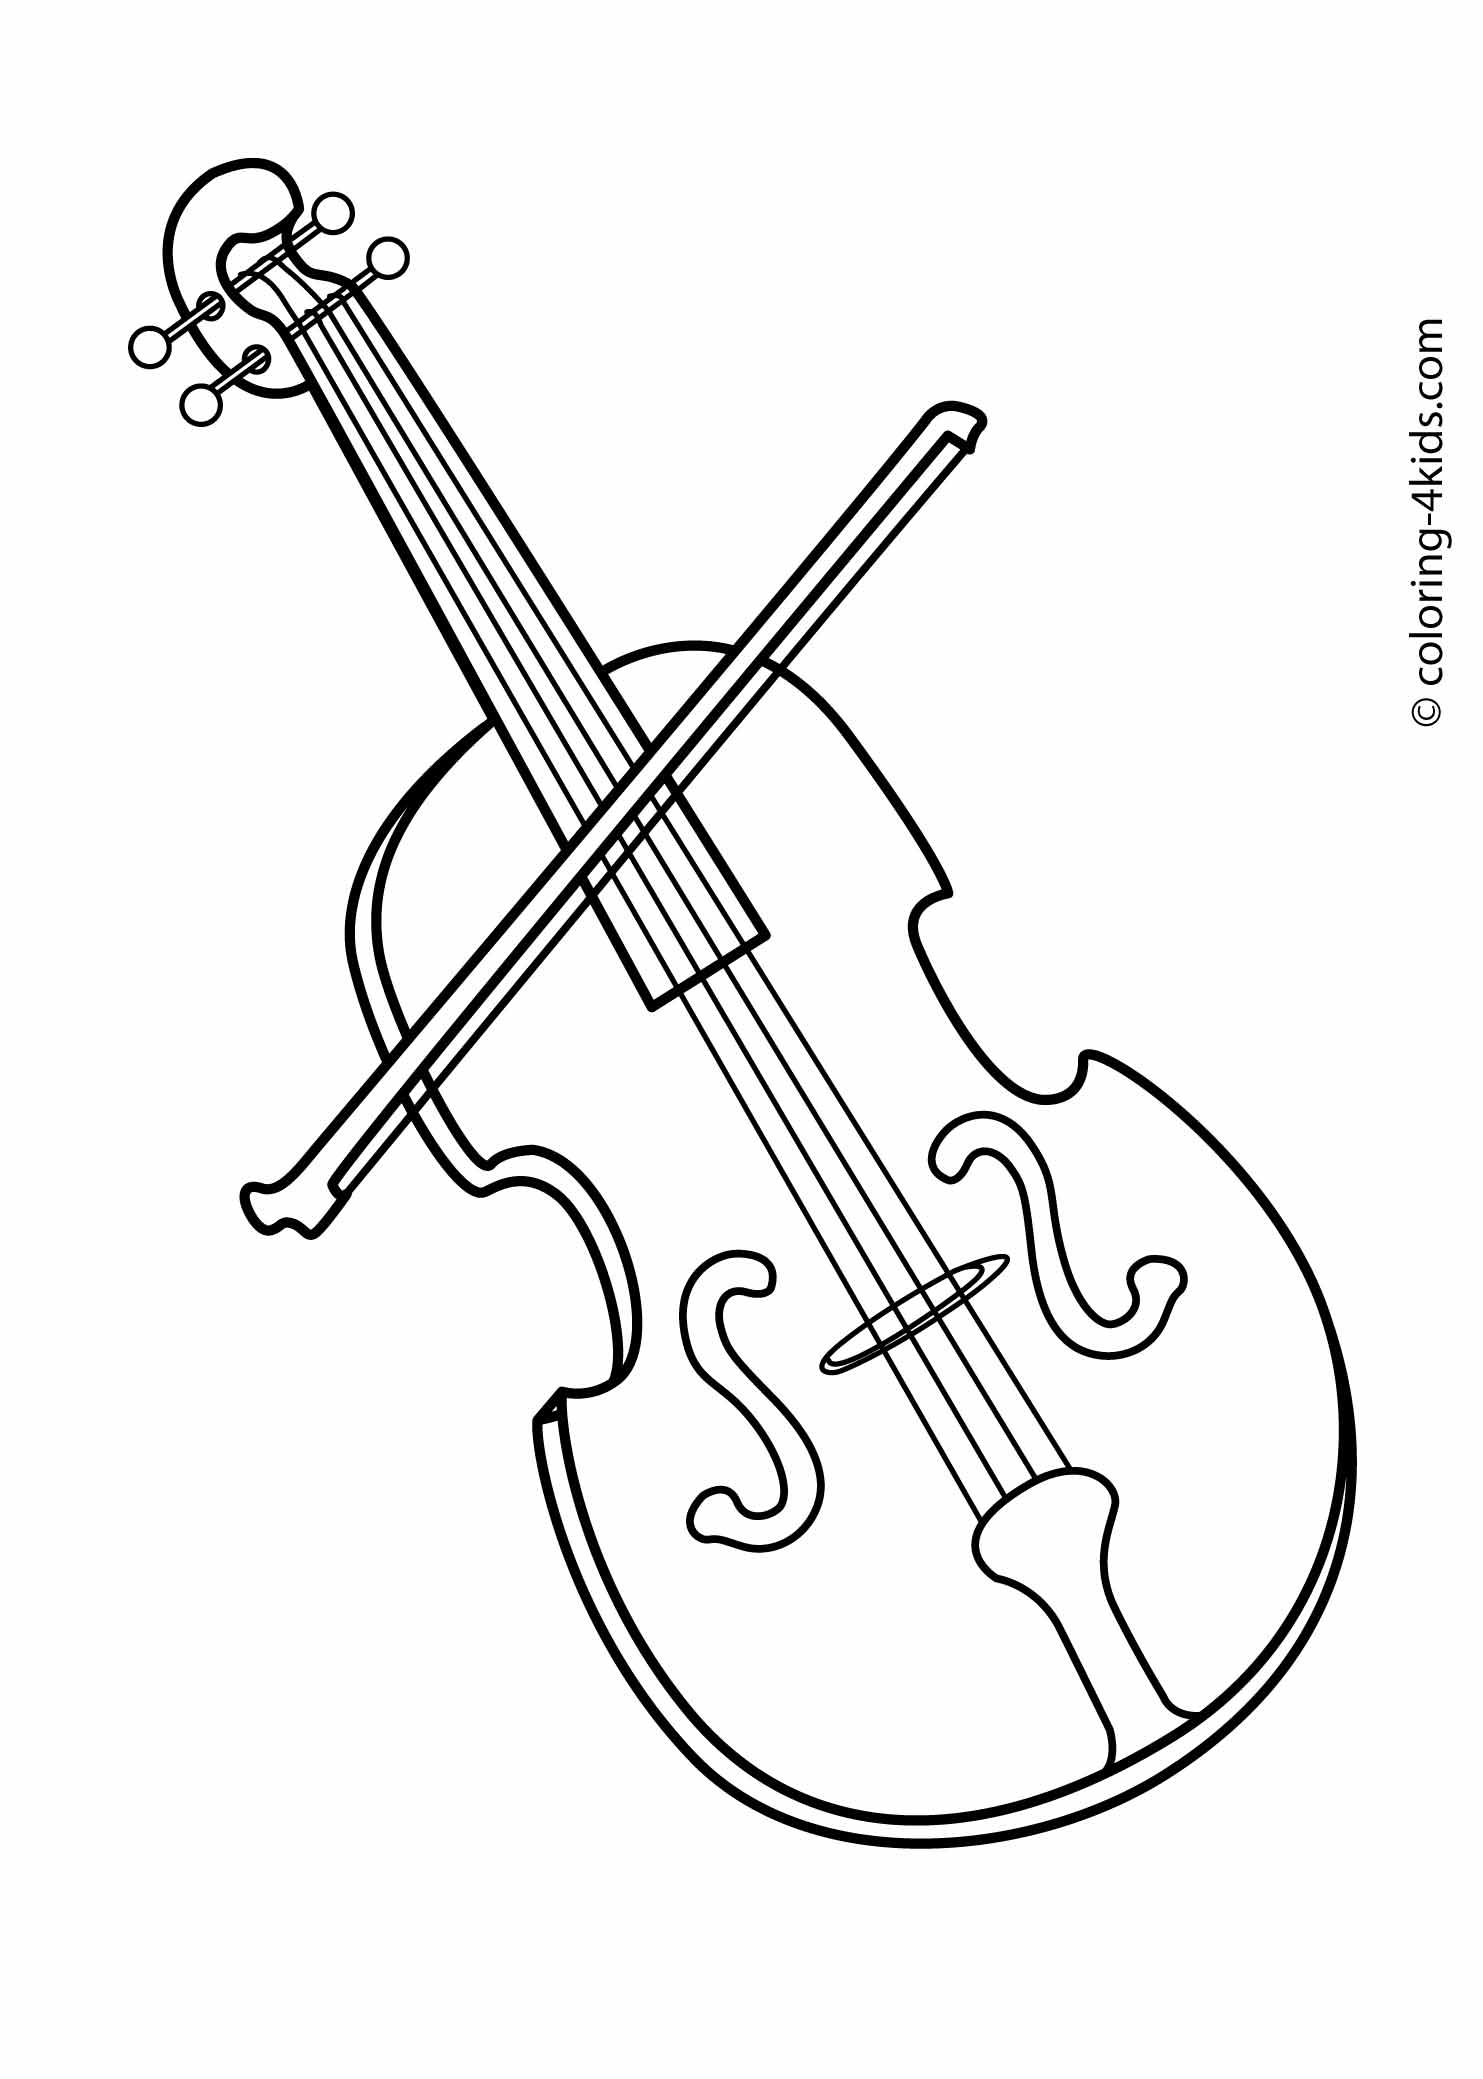 Instrument Coloring Pages To Download And Print For Free